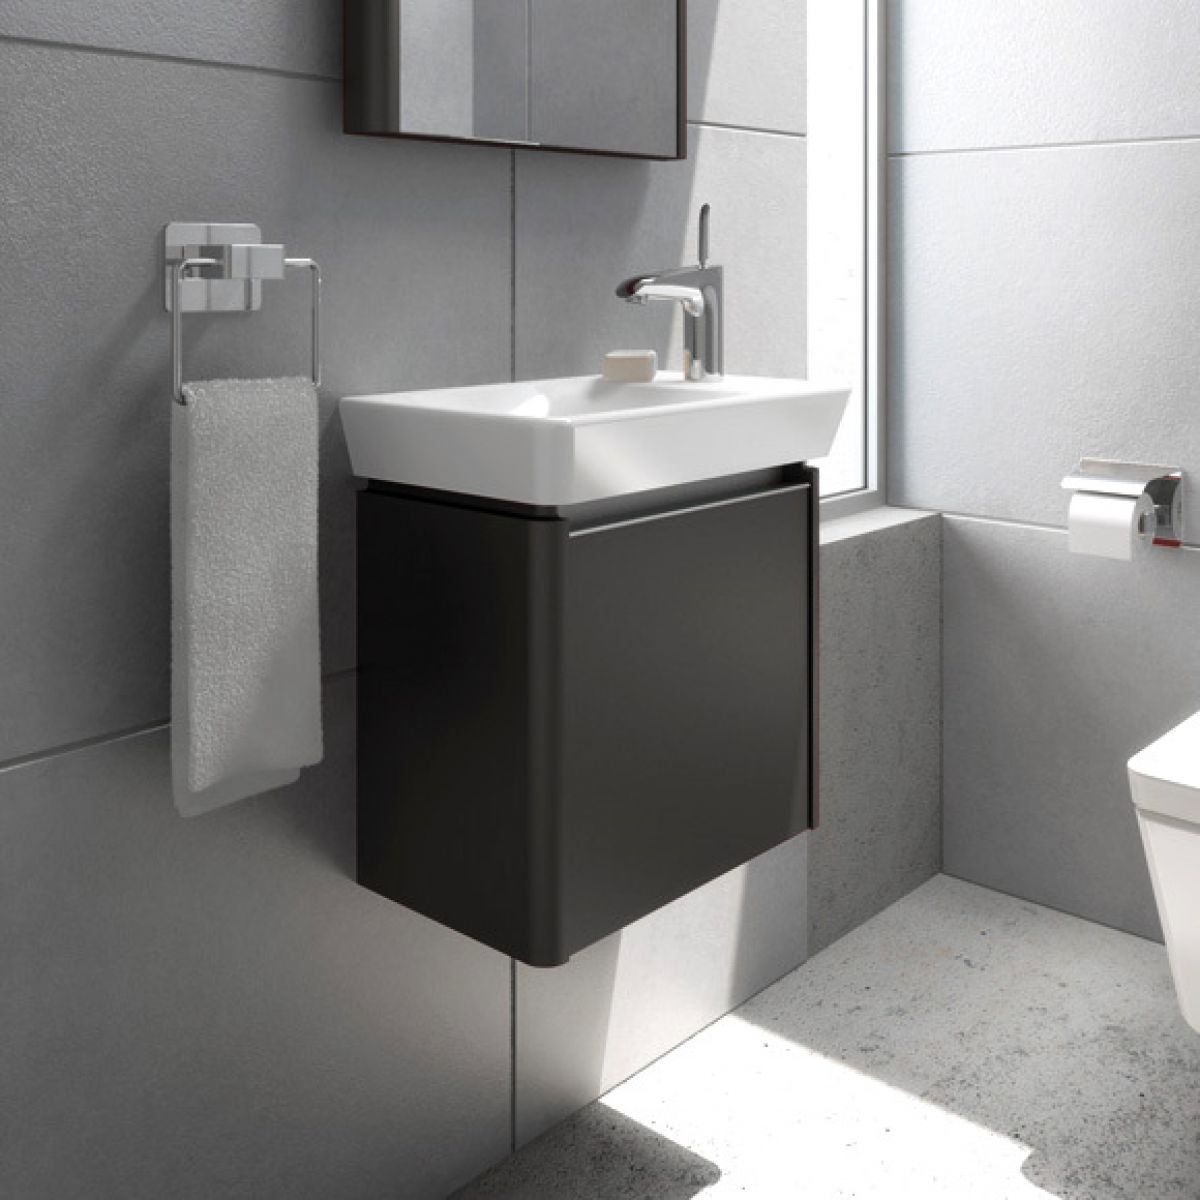 Vitra T4 Basin With Offset Tap Hole Uk Bathrooms